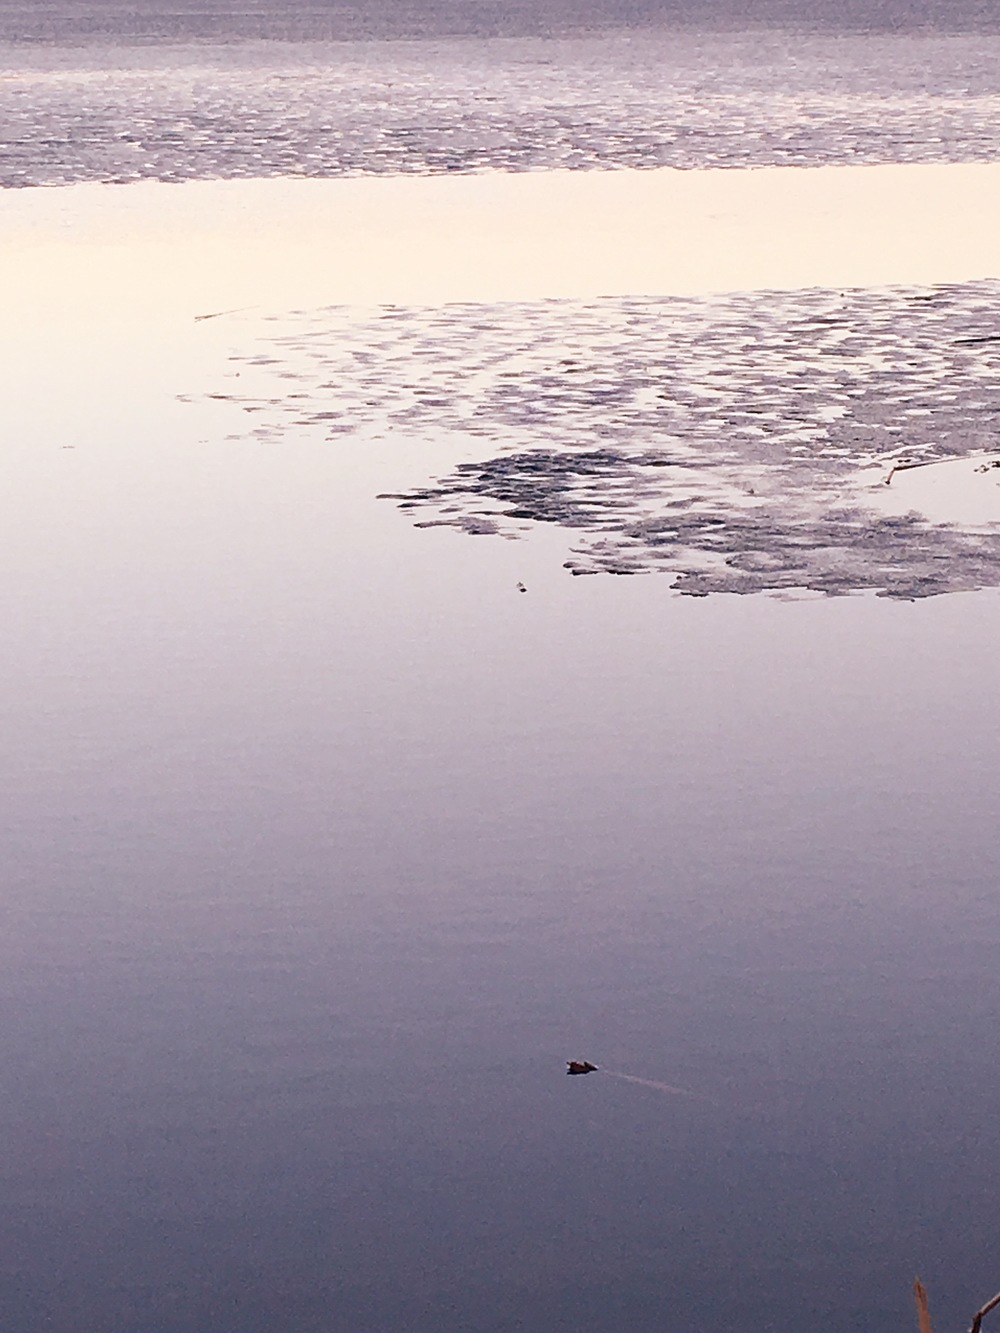 Excited to see the ice melt away and to see the stillness of the water on walks.